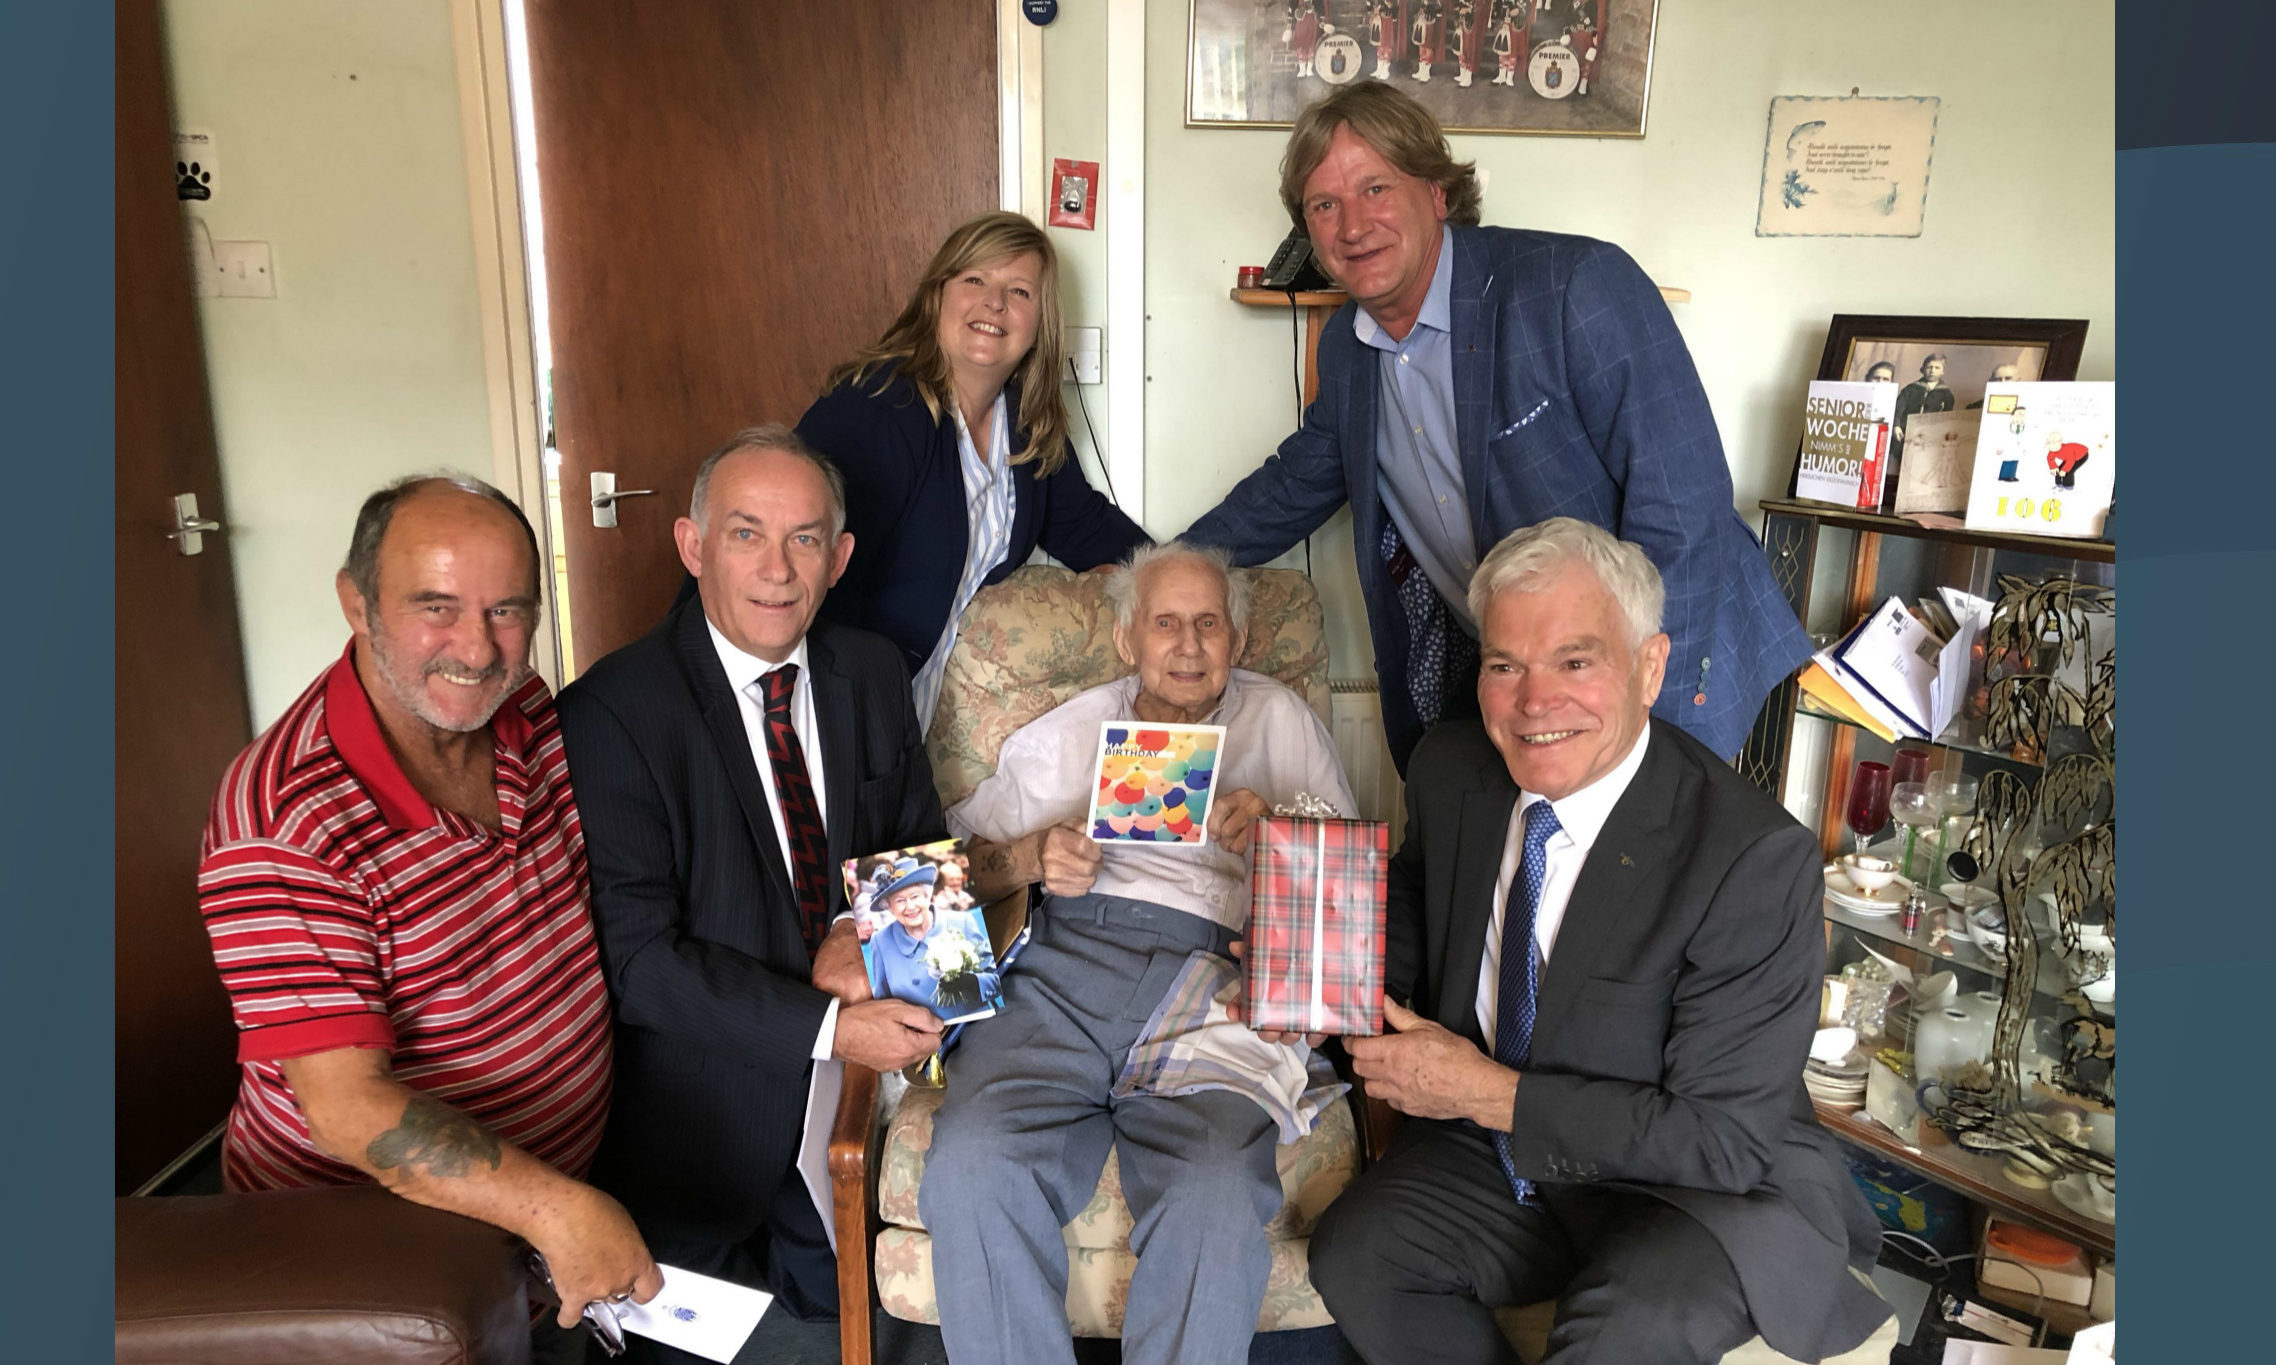 Jimmy, seated, is joined by his carer Archie Howie, Deputy Lieutenant of Fife Jim Kinloch, Councillor Carol Lindsay, David Torrance MSP and Fife Council's armed forces champion Councillor Rod Cavanagh.